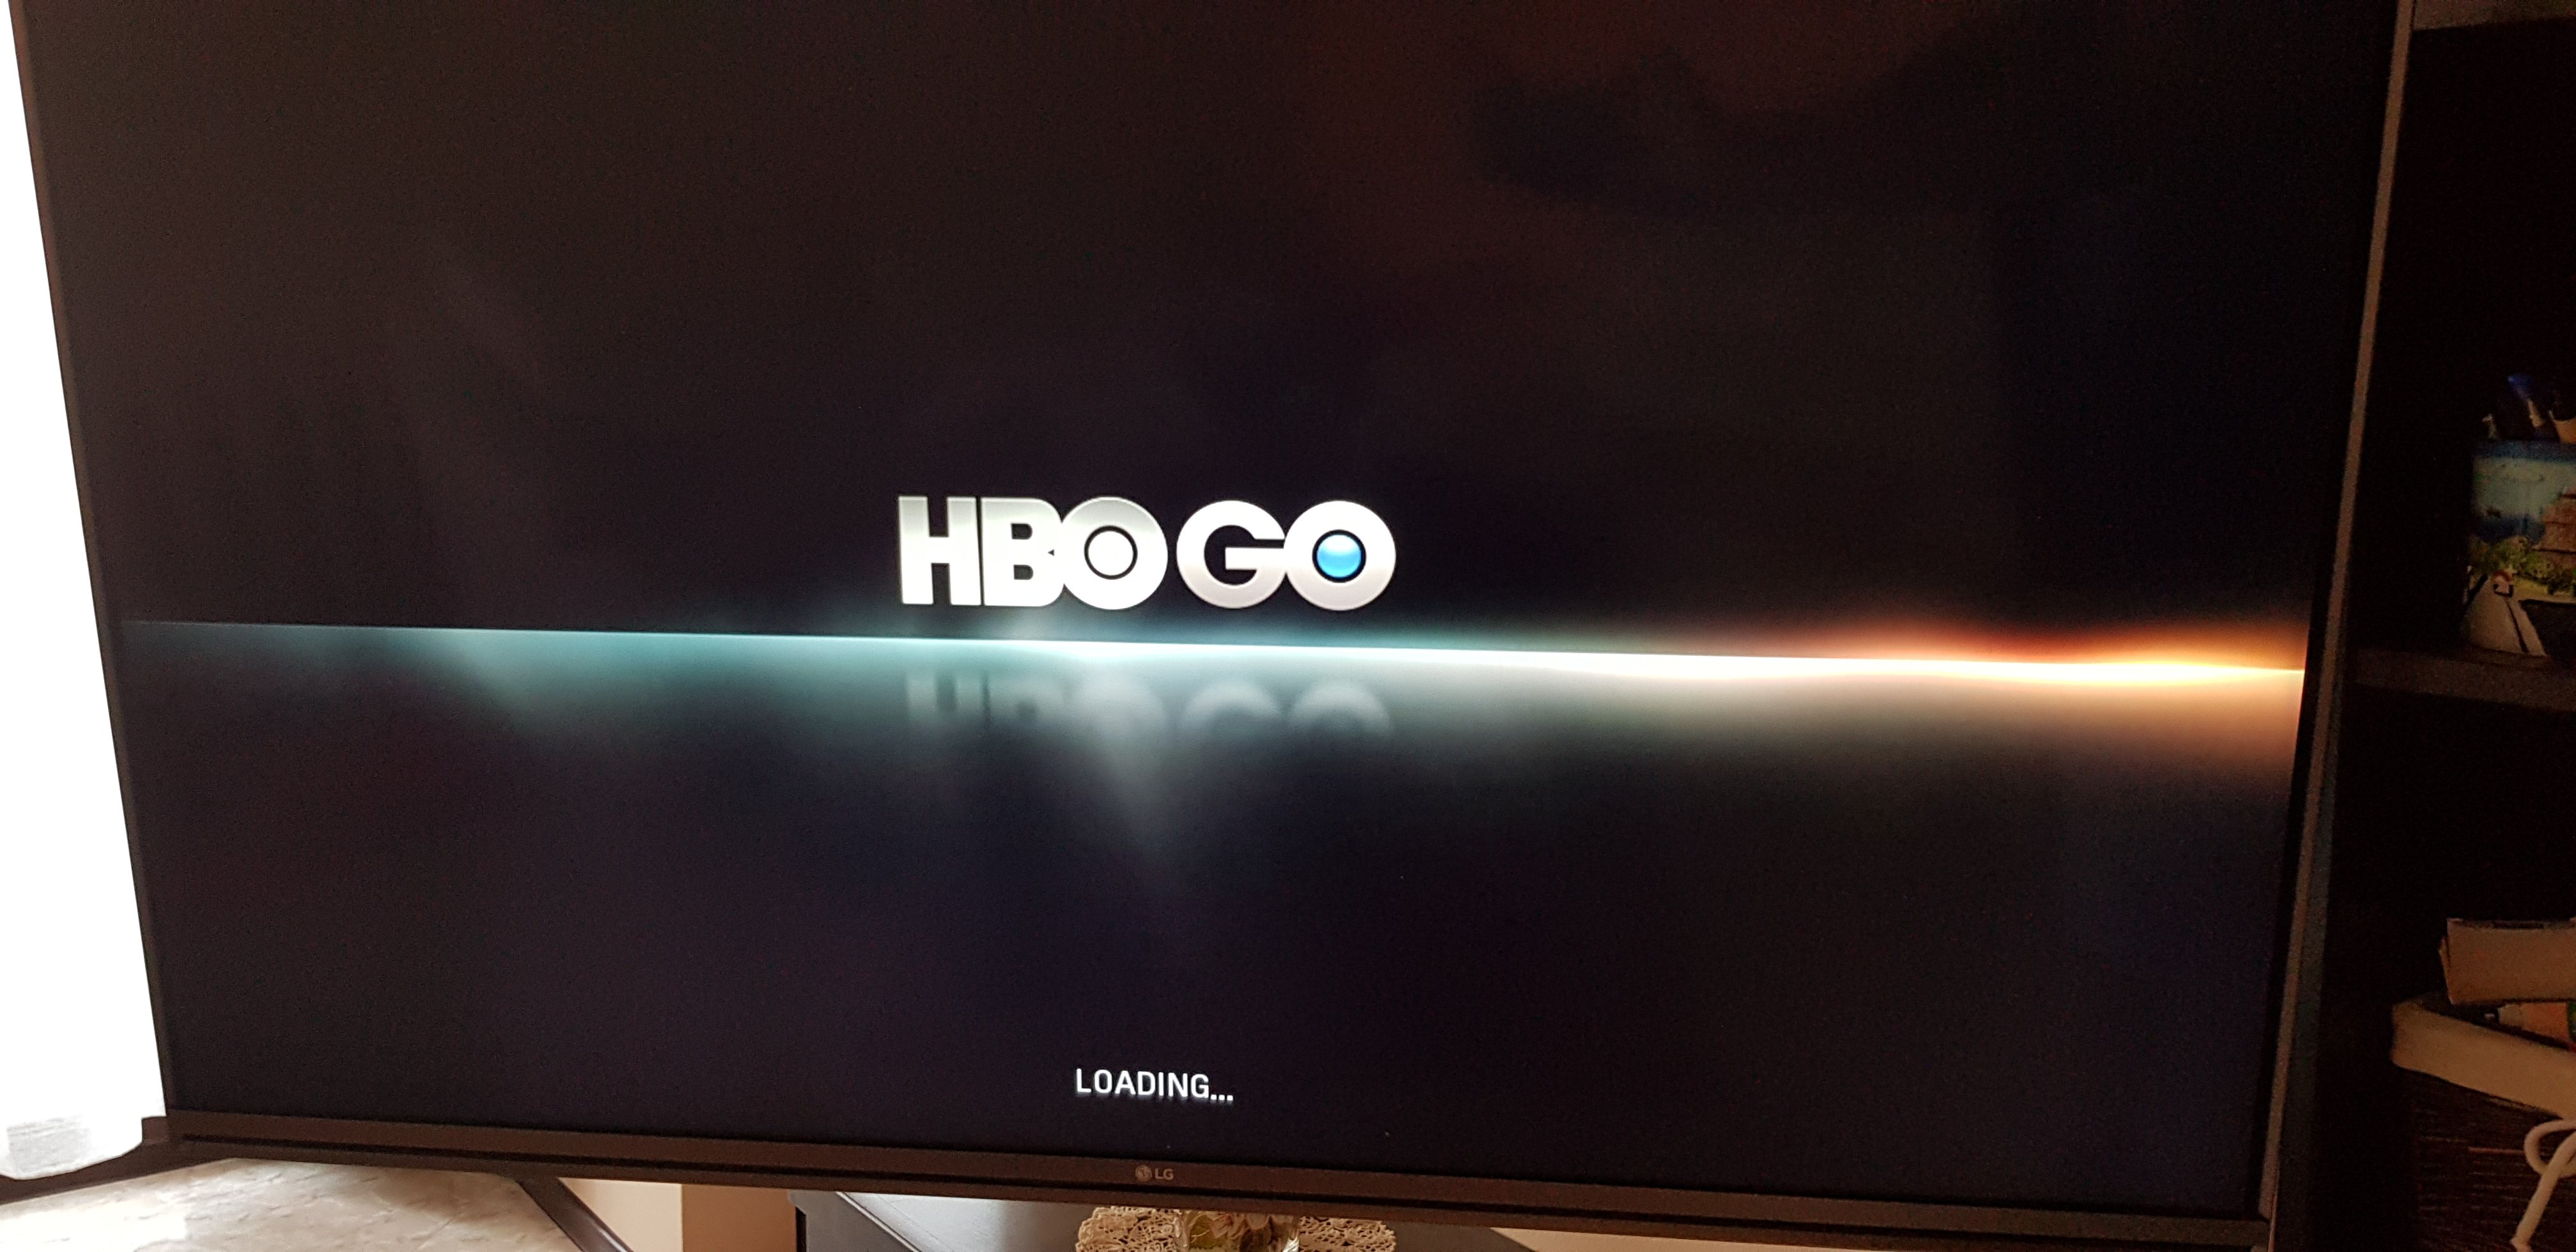 HBO GO freezes on loading - LG webOS Smart TV App Questions - LG webOS